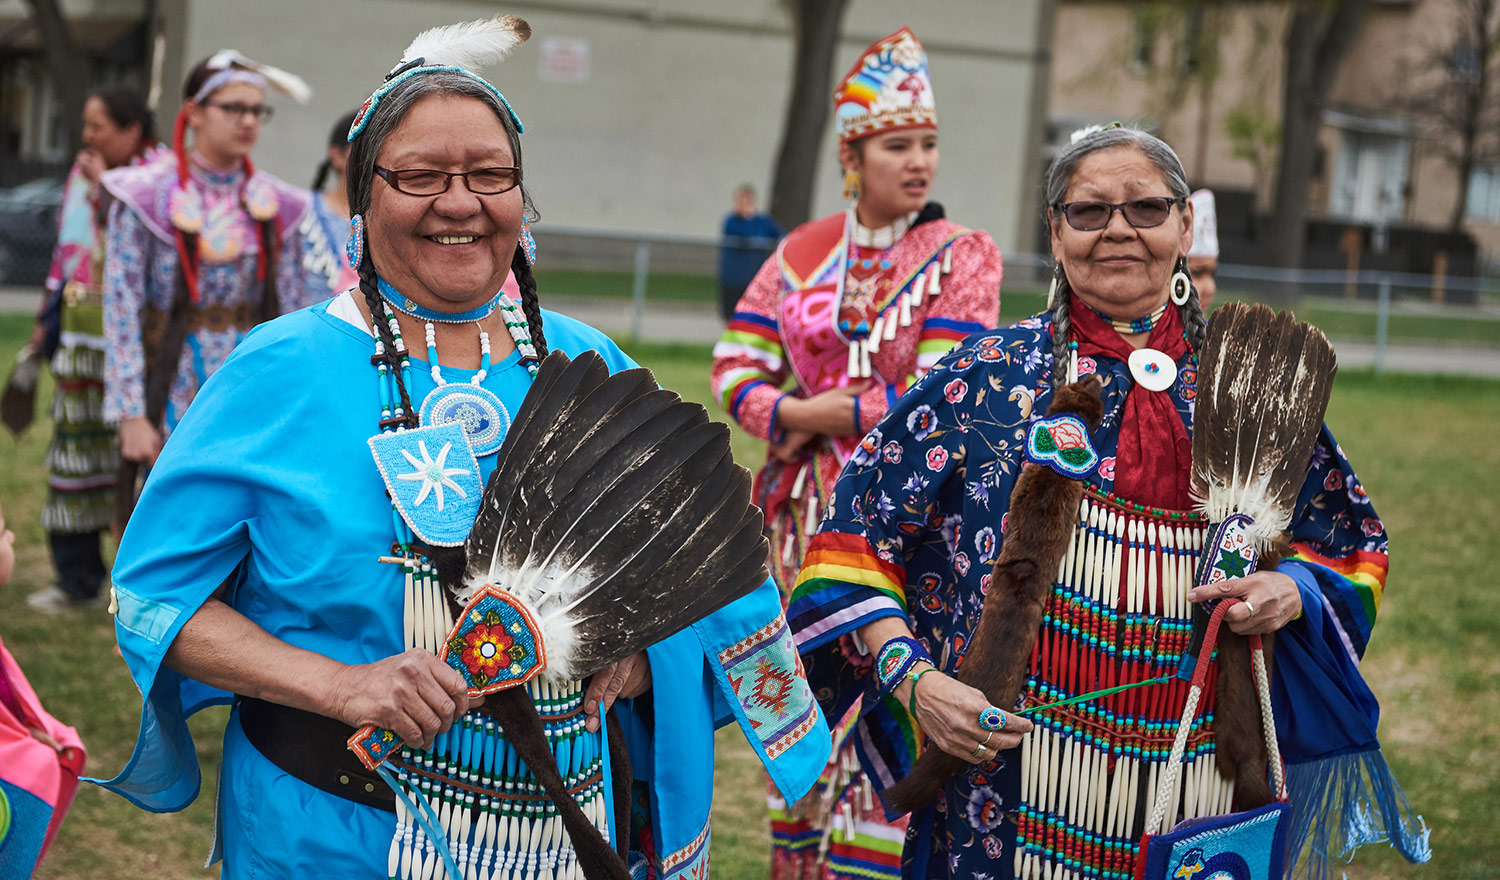 Women at Rossbrook House's Pow Wow.